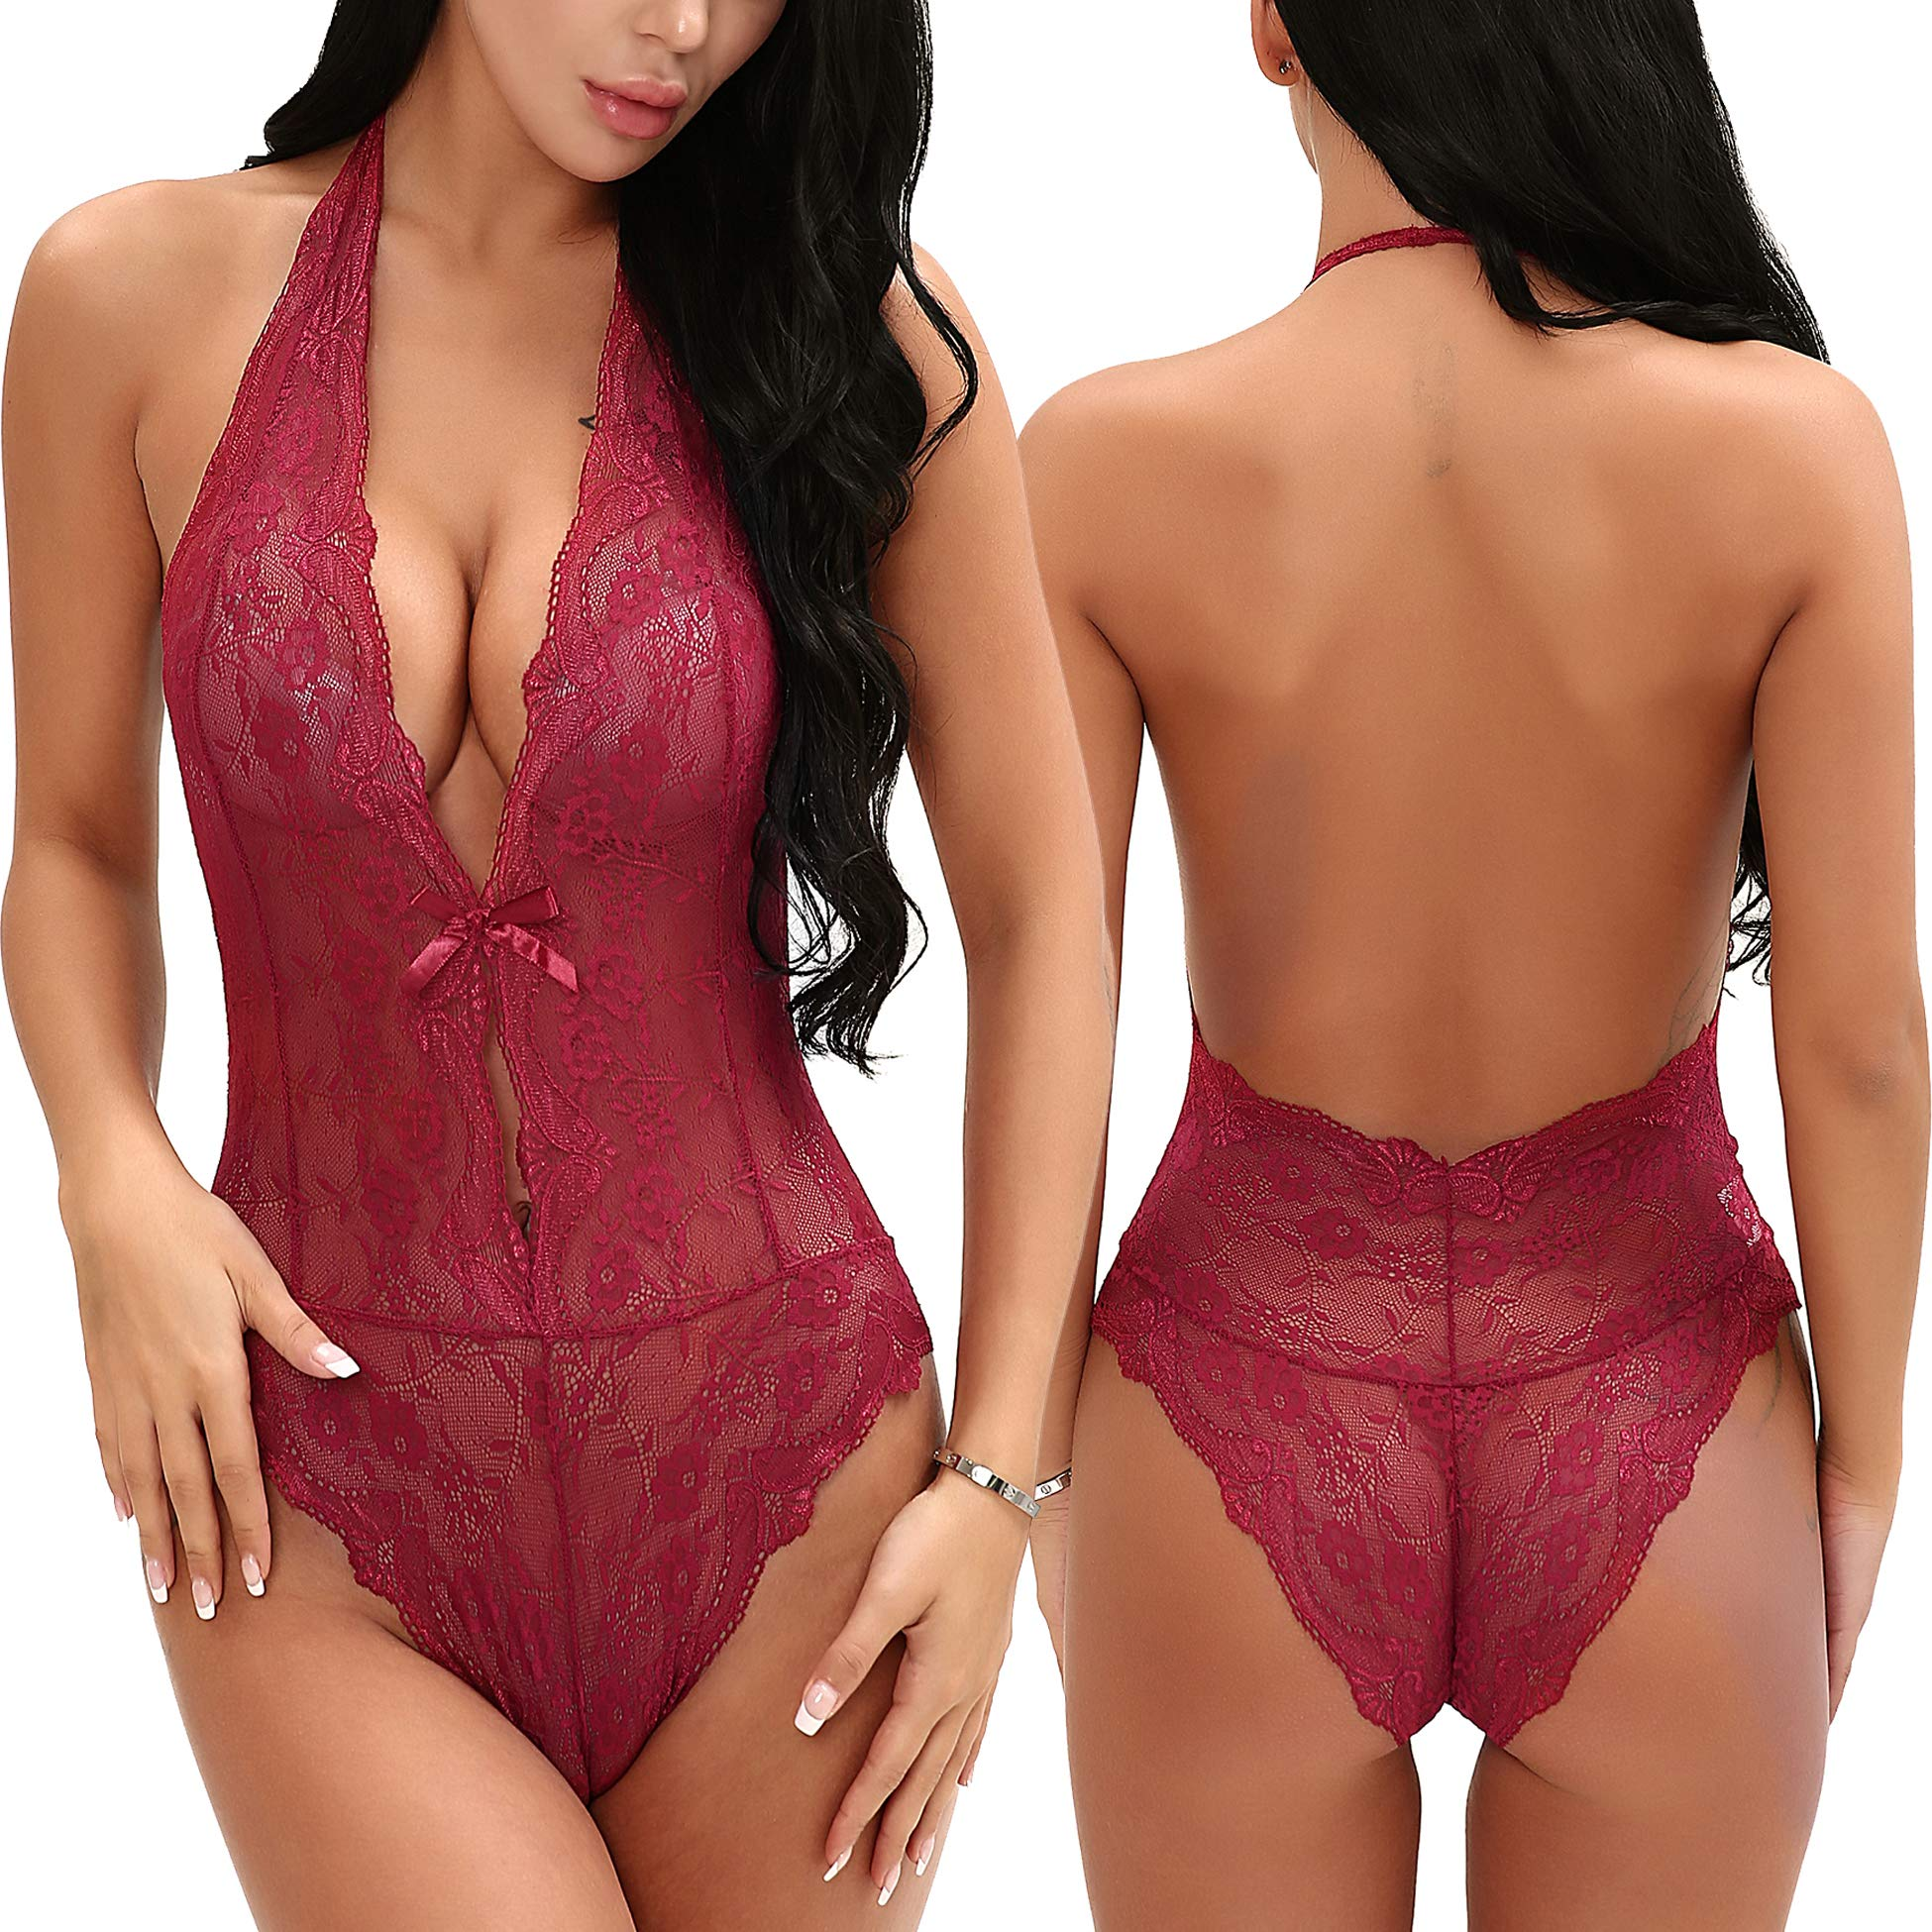 ALLUROMAN Women Sexy Lingerie One Piece Teddy Halter Bodysuit Lace Babydoll Wine Red M